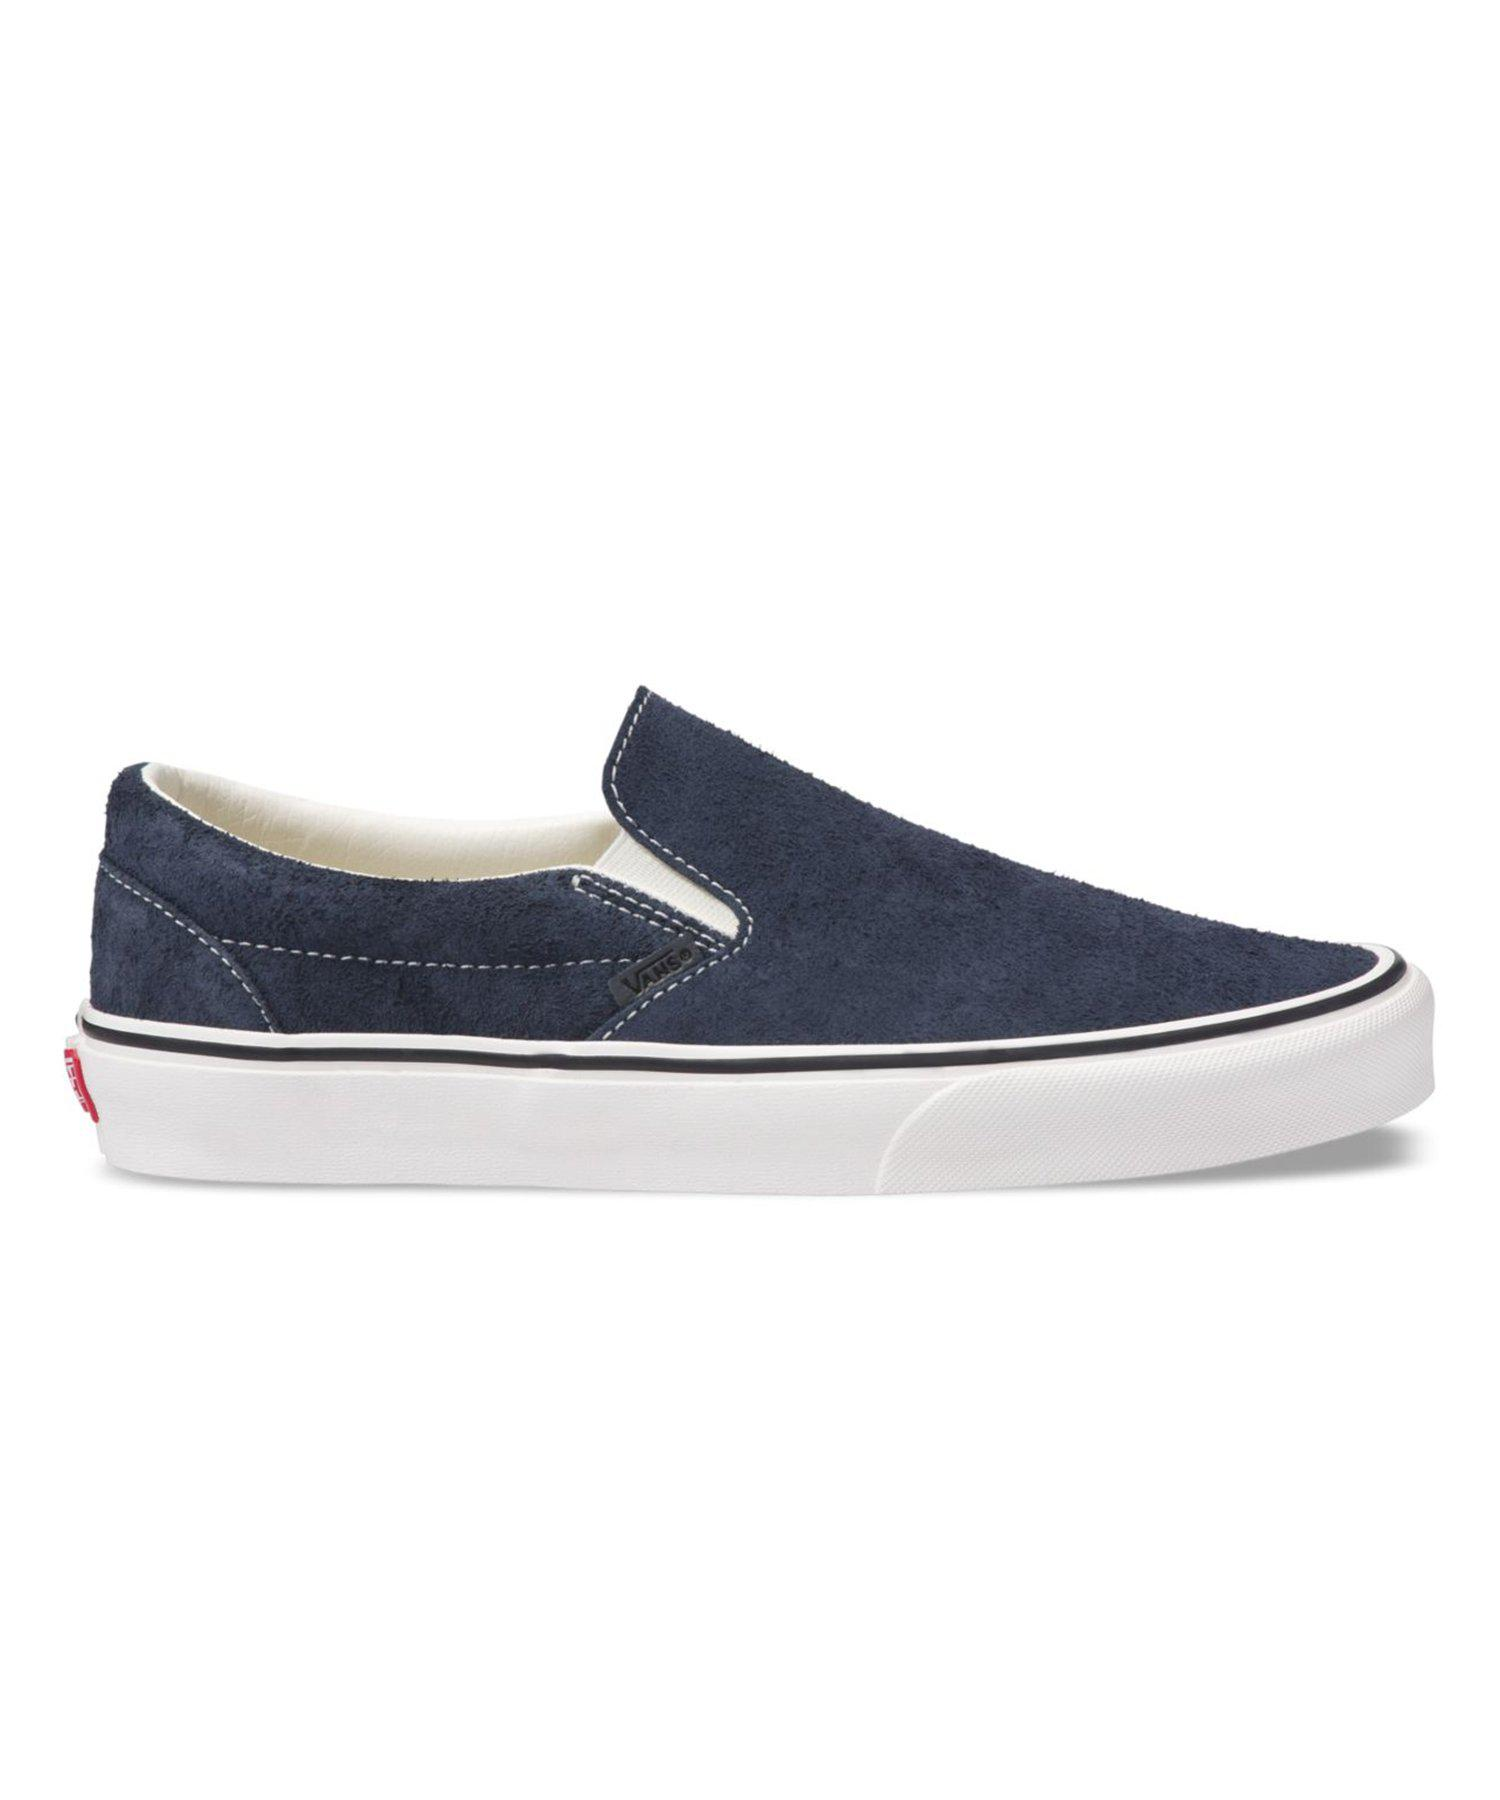 82e64da6ef6f Lyst - Vans Classic Slip-on In Blue Hairy Suede in Blue for Men